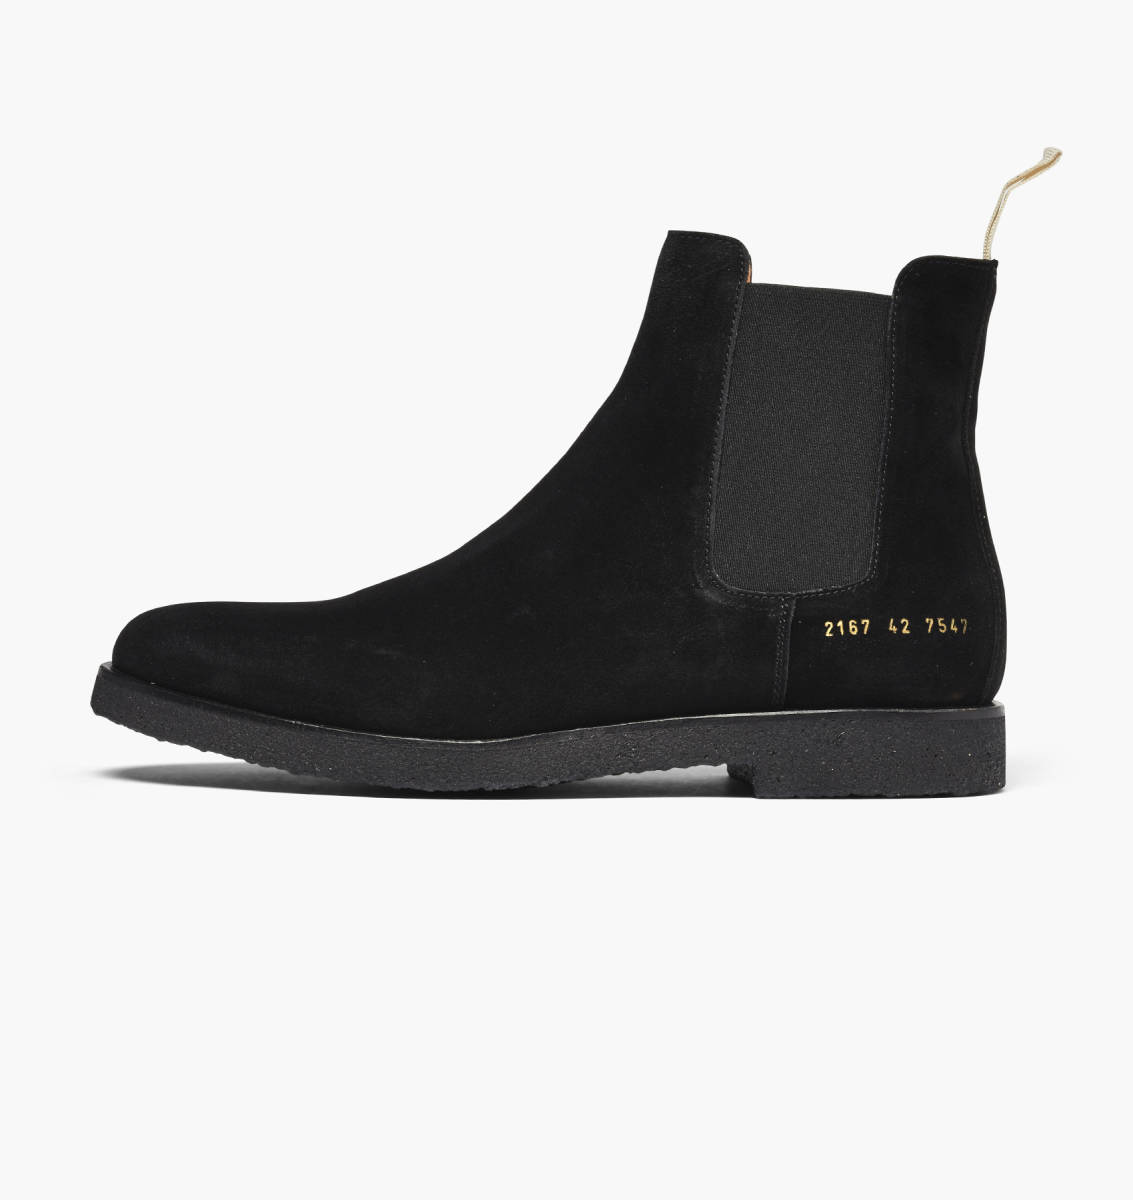 common-projects-chelsea-boot-suede-sneaker-2167-7547